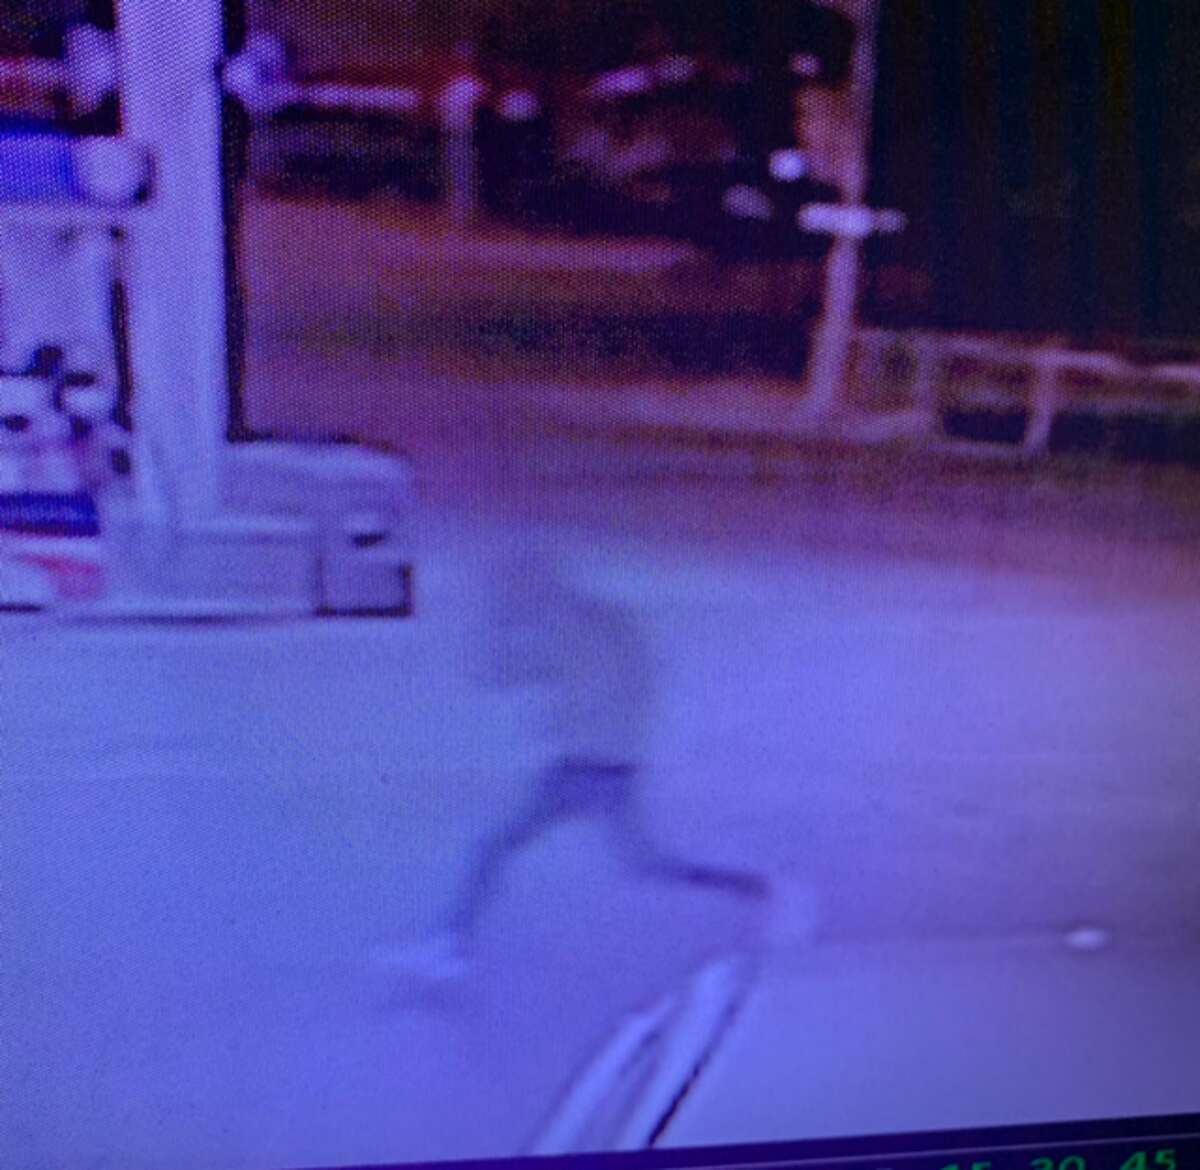 The Midland Police Department has released photos of a suspect captured on surveillance footage.